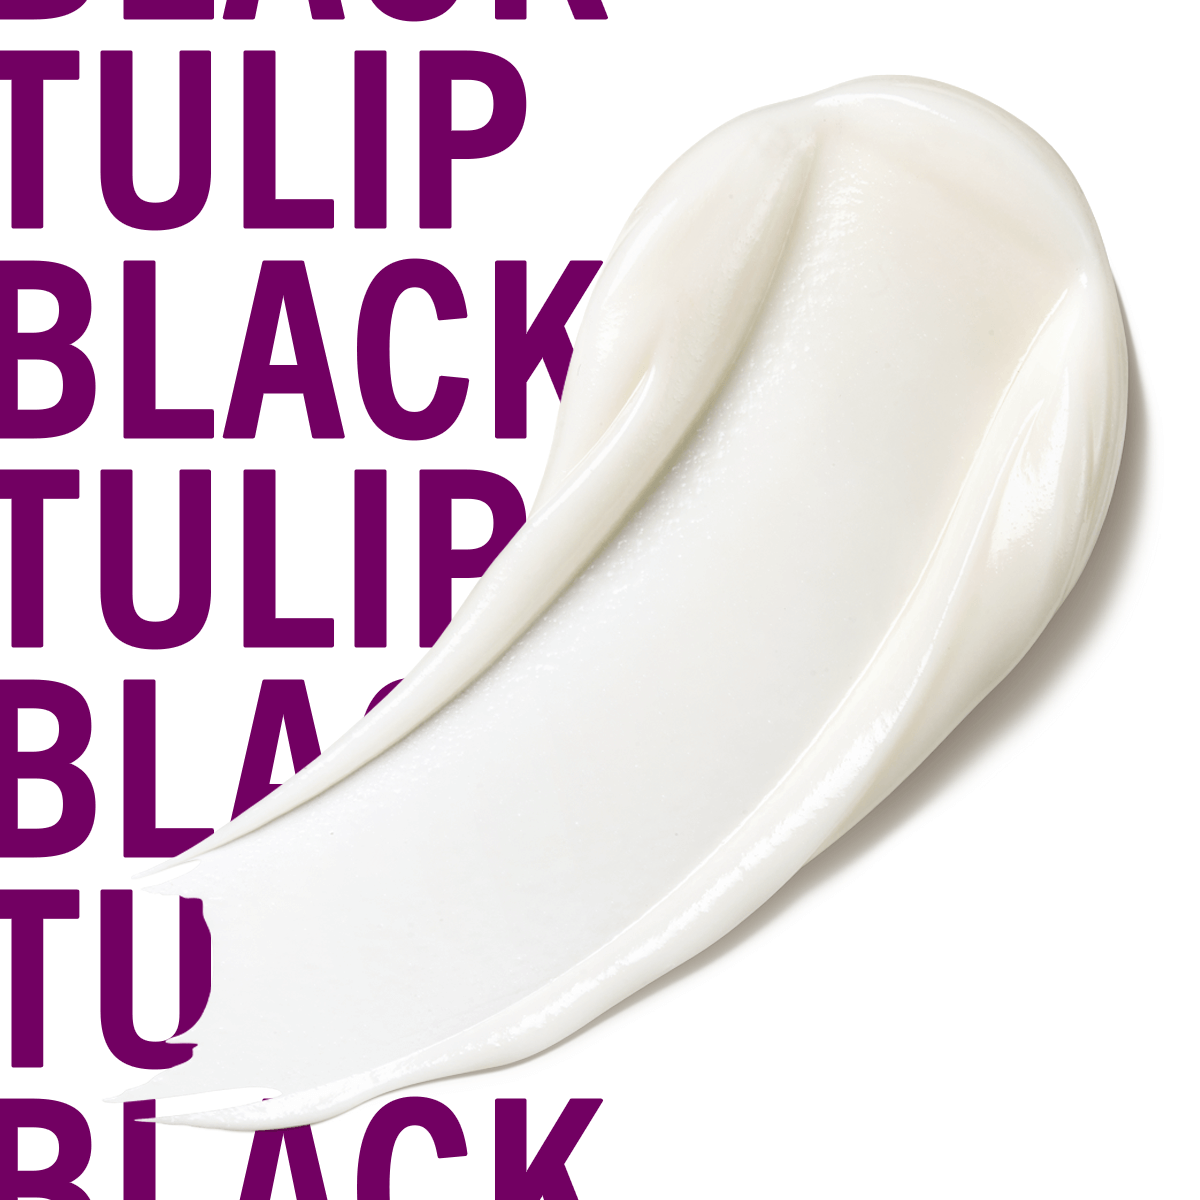 Black Tulip 250ml Hand & Body Lotion | Oriental plum flirts with creamy white chocolate and wood. | Clean All Gender Fragrance | Shay & Blue